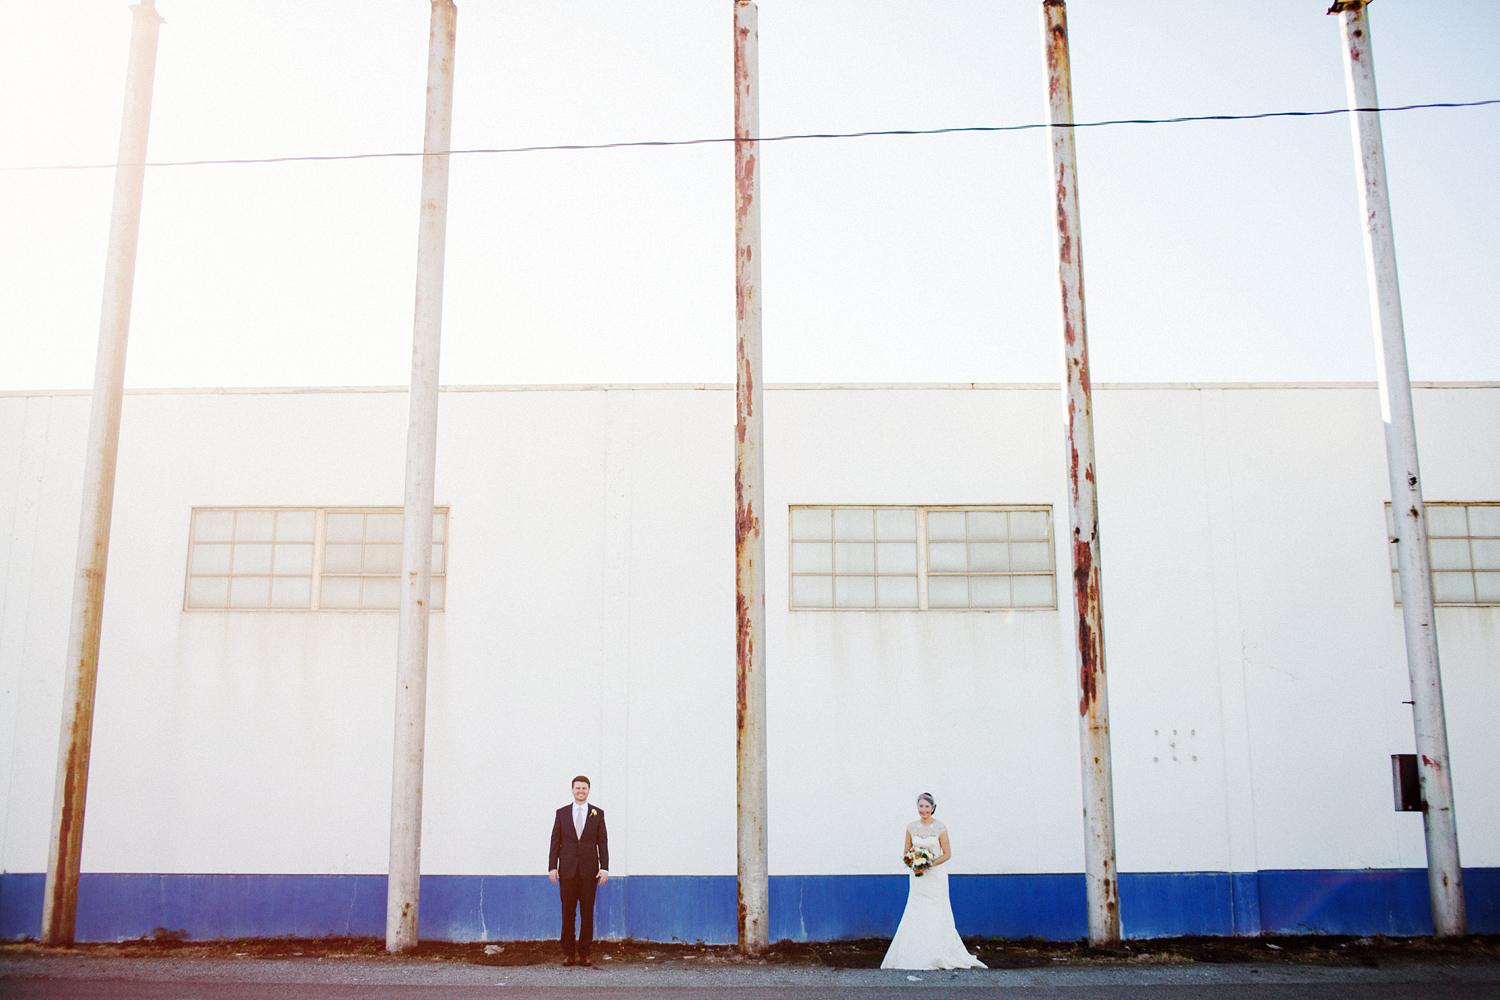 ryan-flynn-photography-best-wedding-photos-2014-0127.JPG